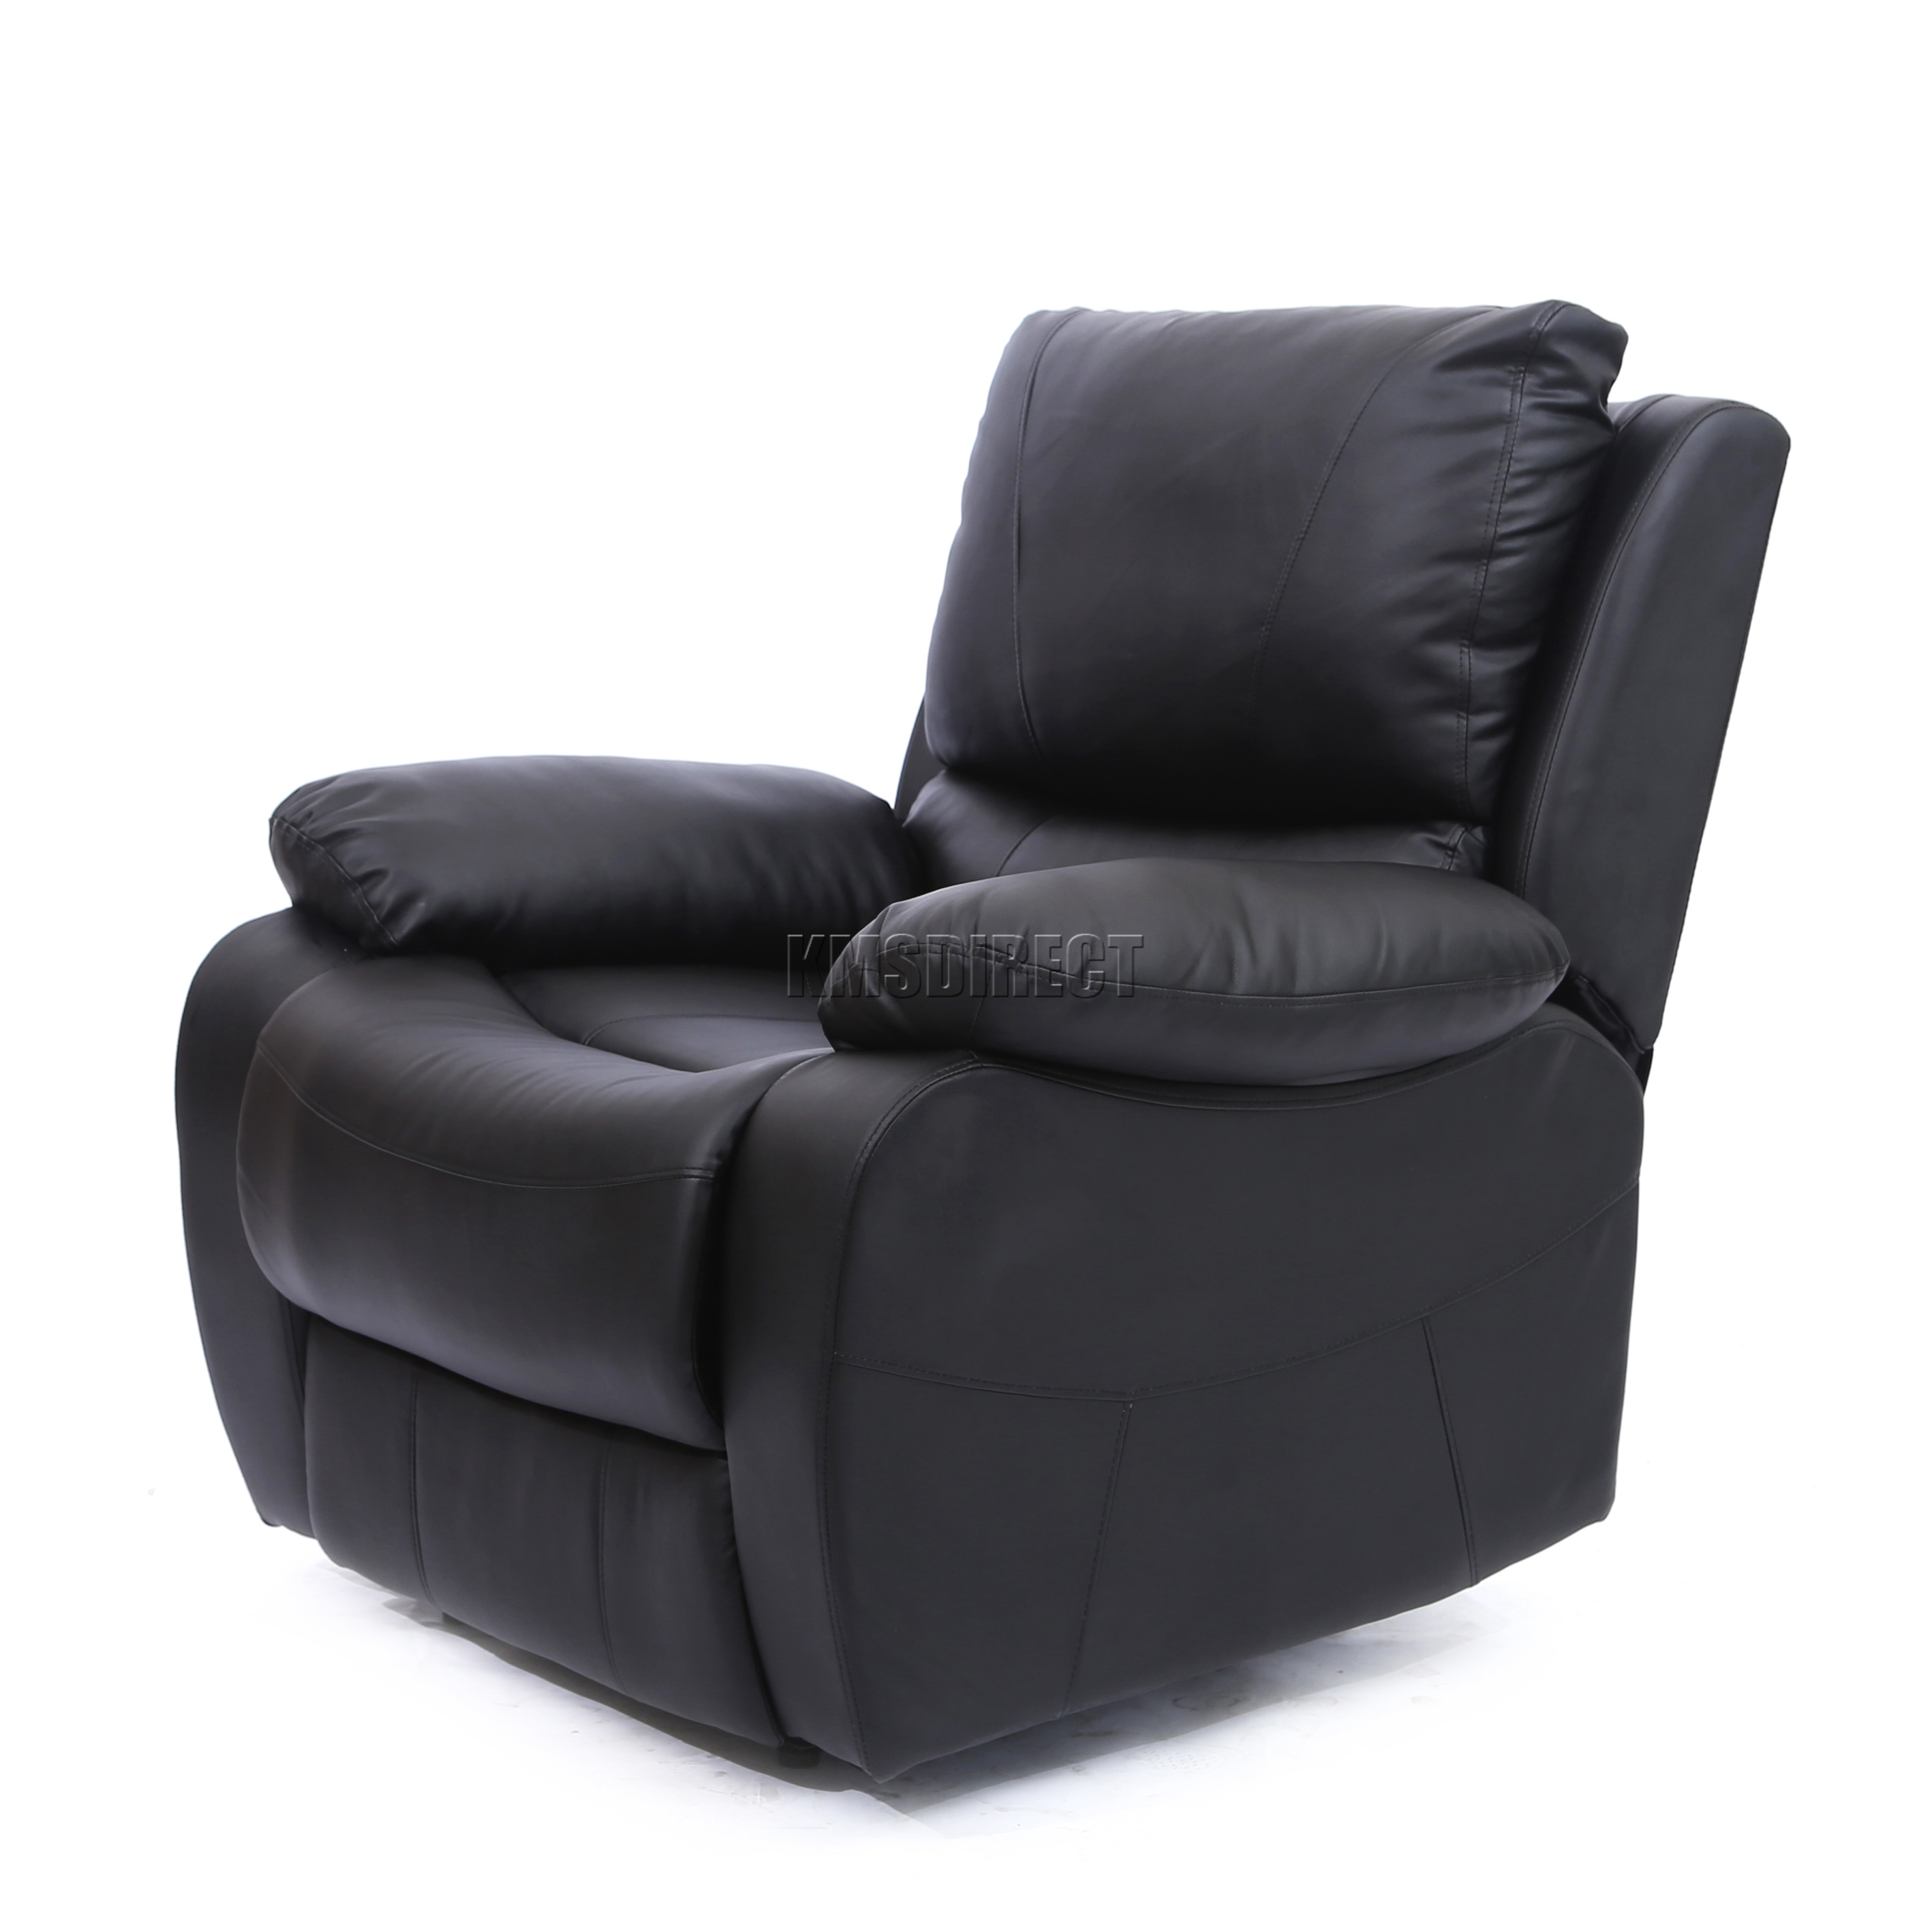 sofa mn for adjustable graford with headrest navy power recliner